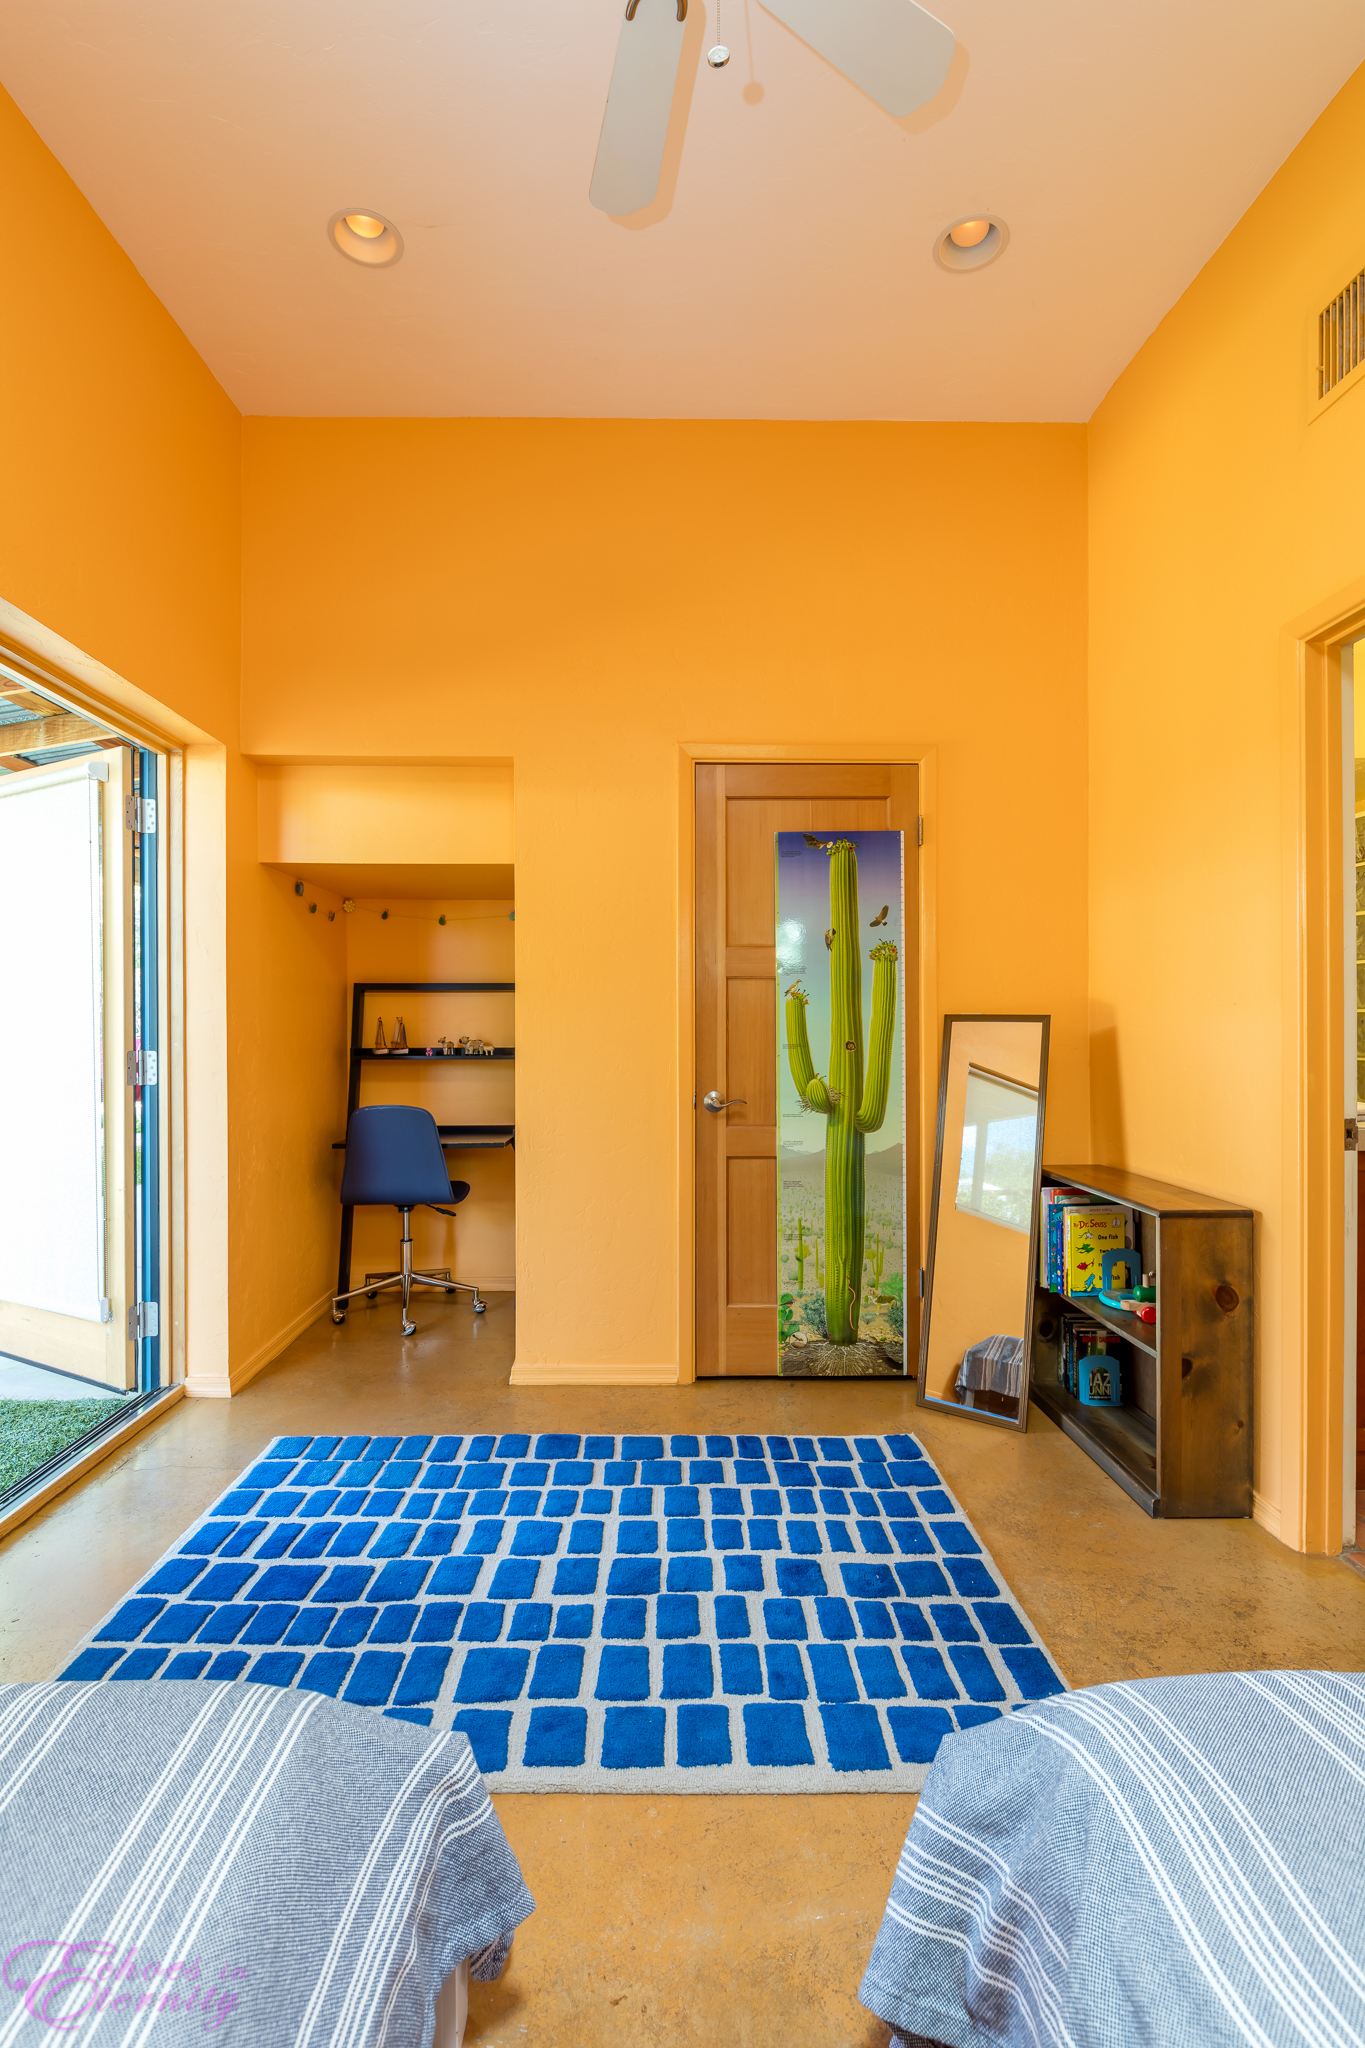 Professional Photos Tucson Arizona Rental Real Estate Photography Airbnb VRBO 01.jpg